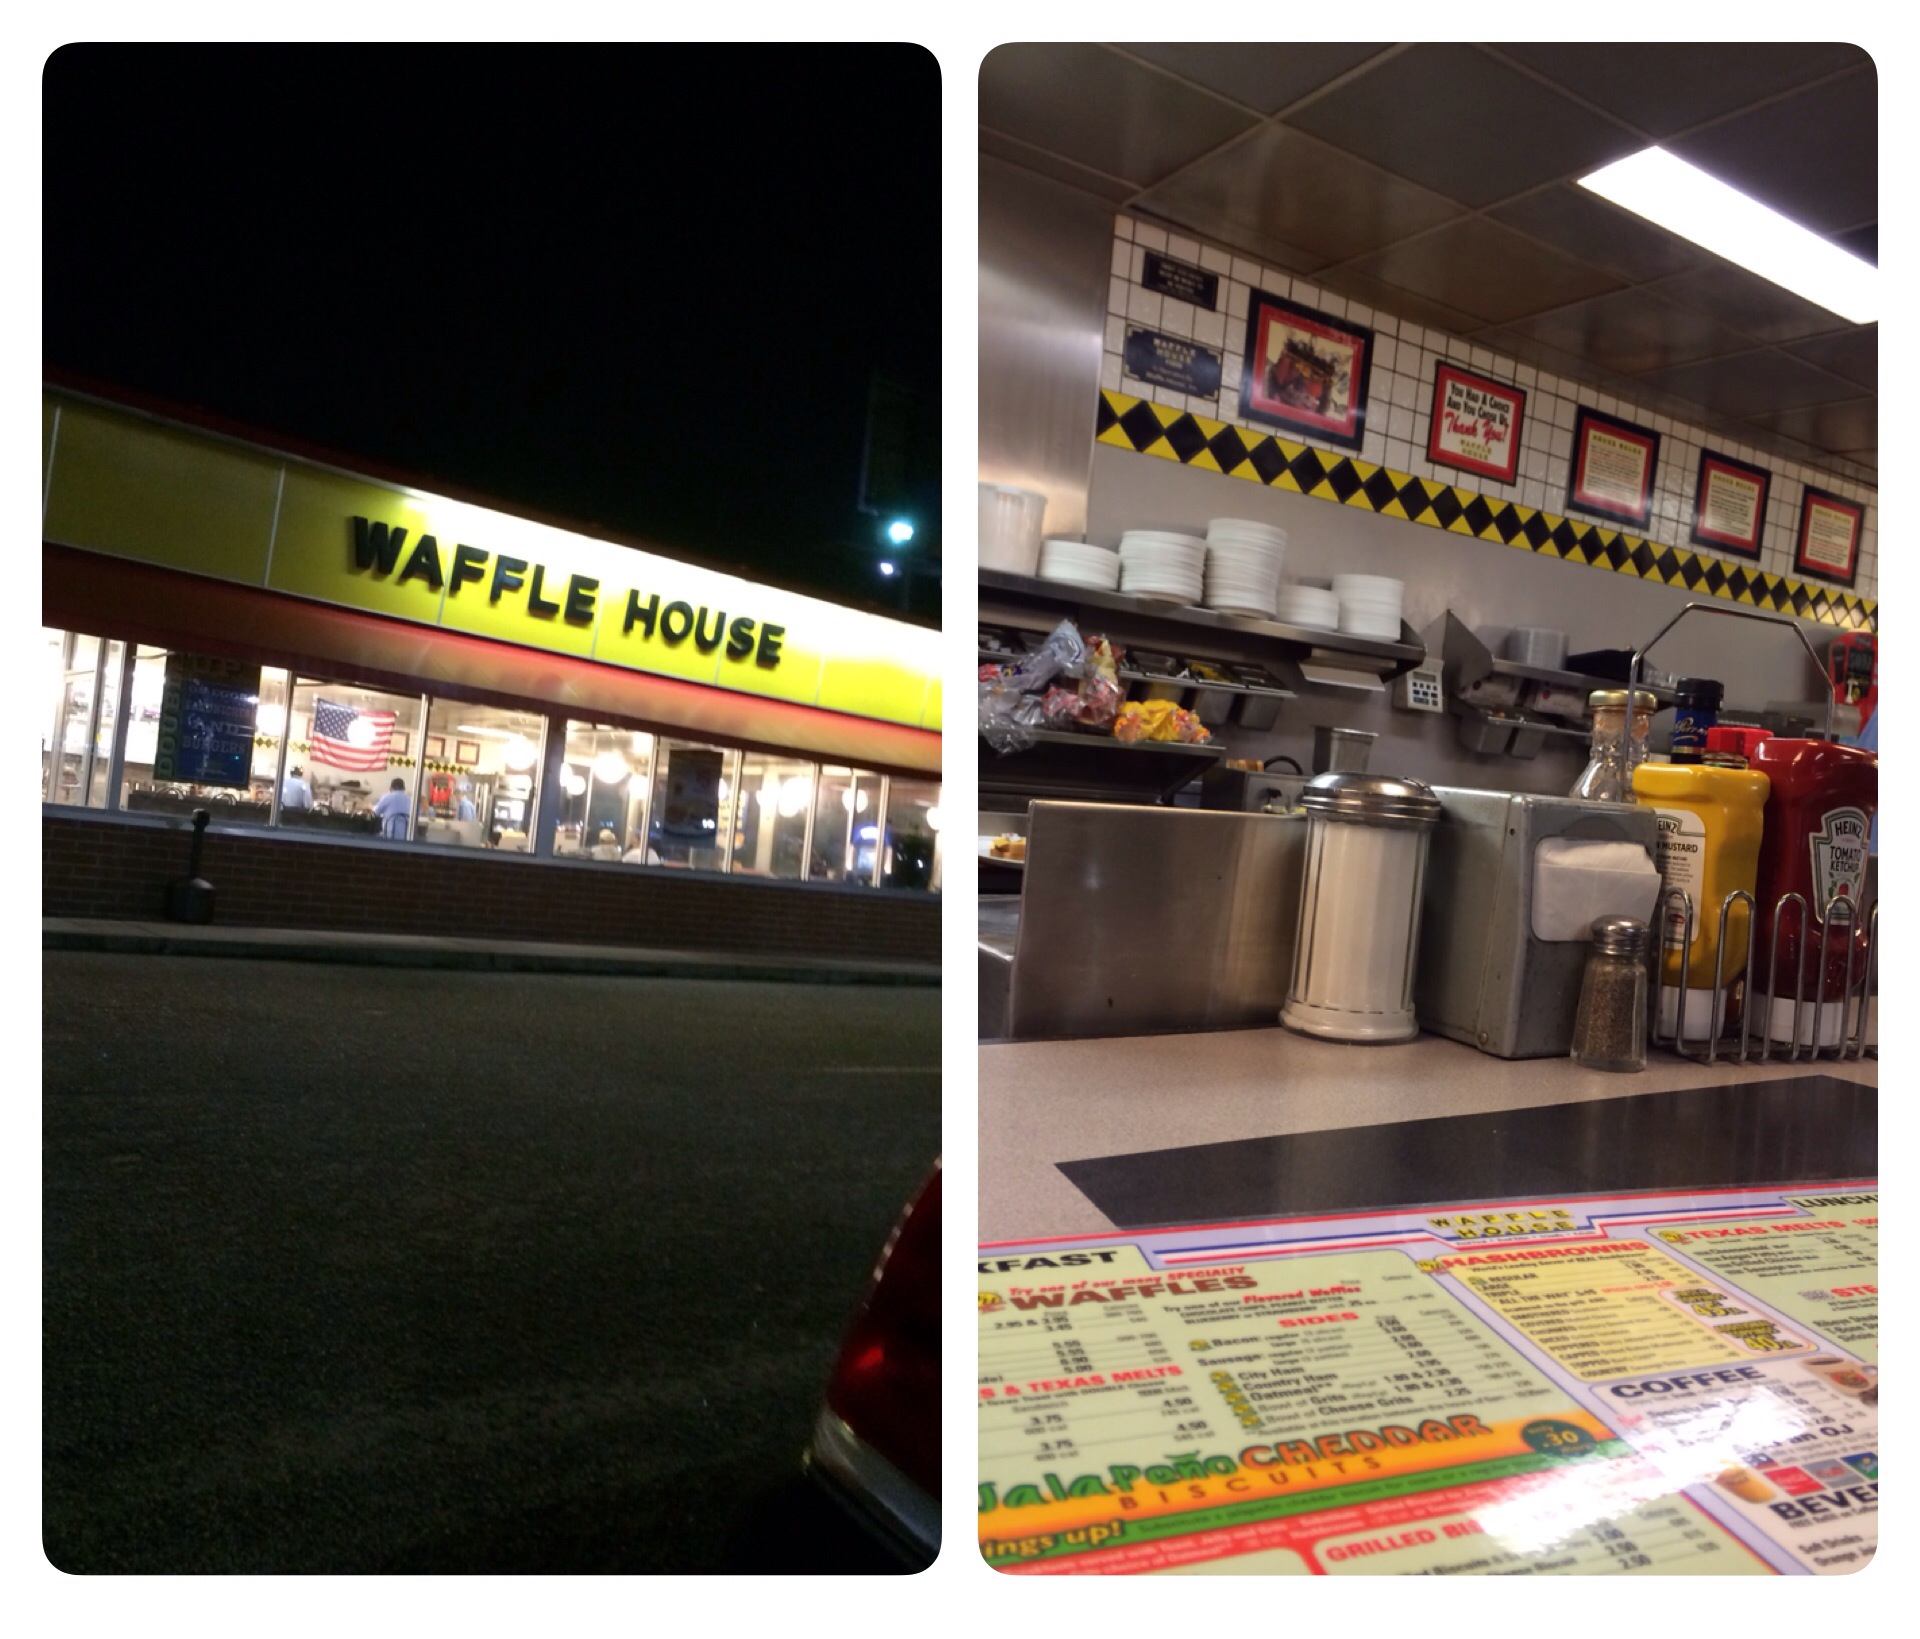 A look at the exterior of the Waffle House I visited and where I sat at the counter.